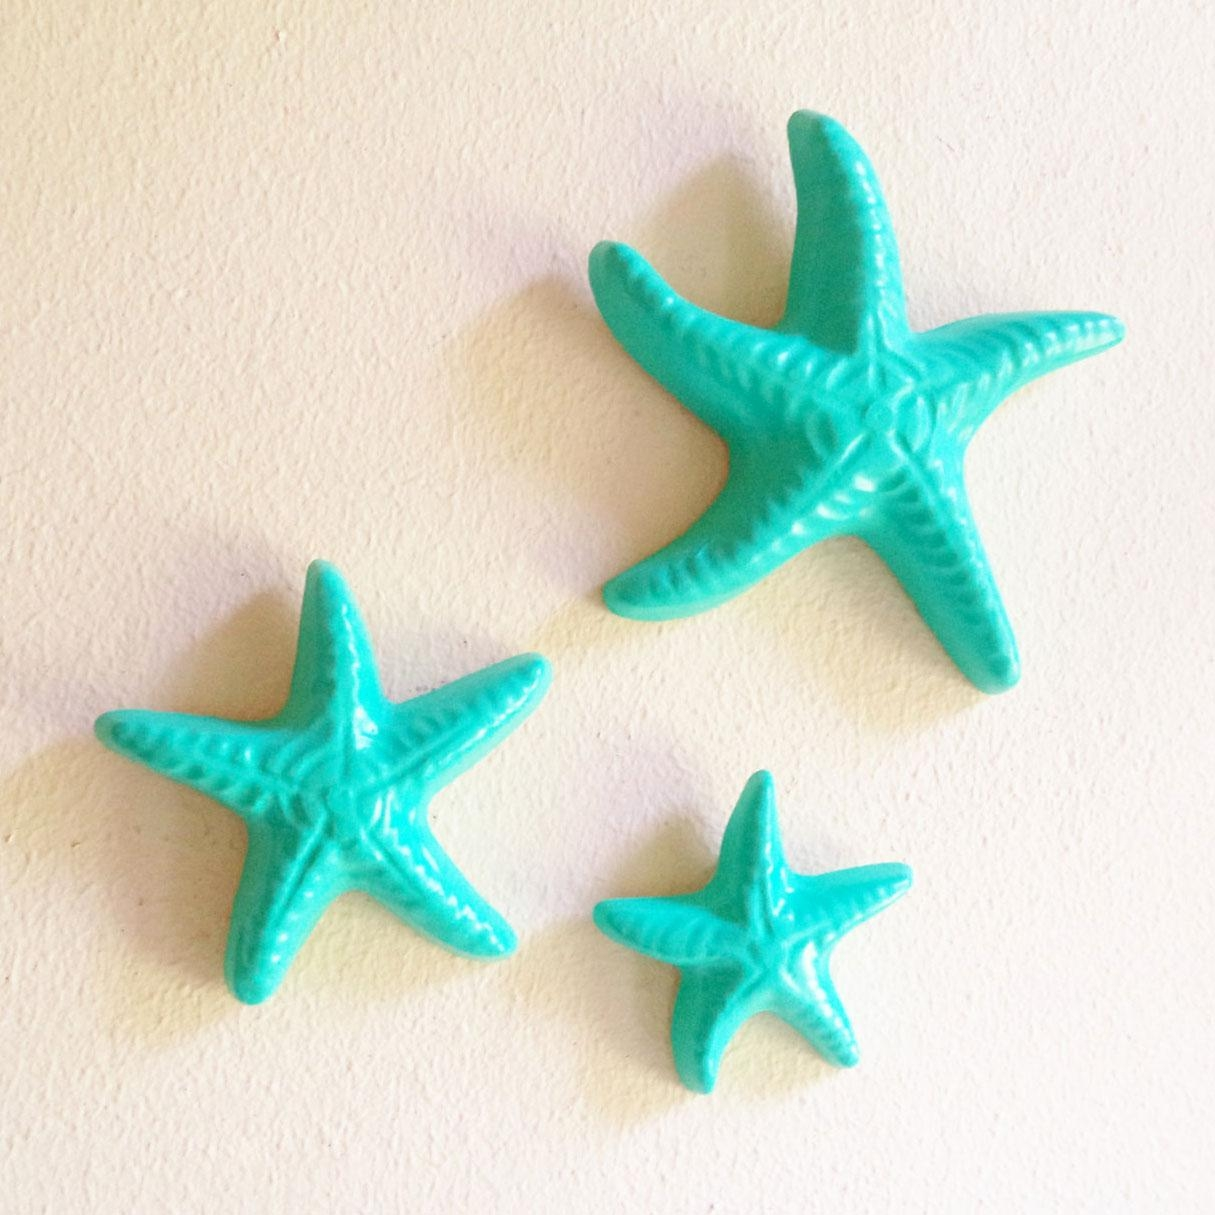 How To Do Starfish Wall Decor | Design Ideas And Decor For Large Starfish Wall Decors (View 7 of 20)